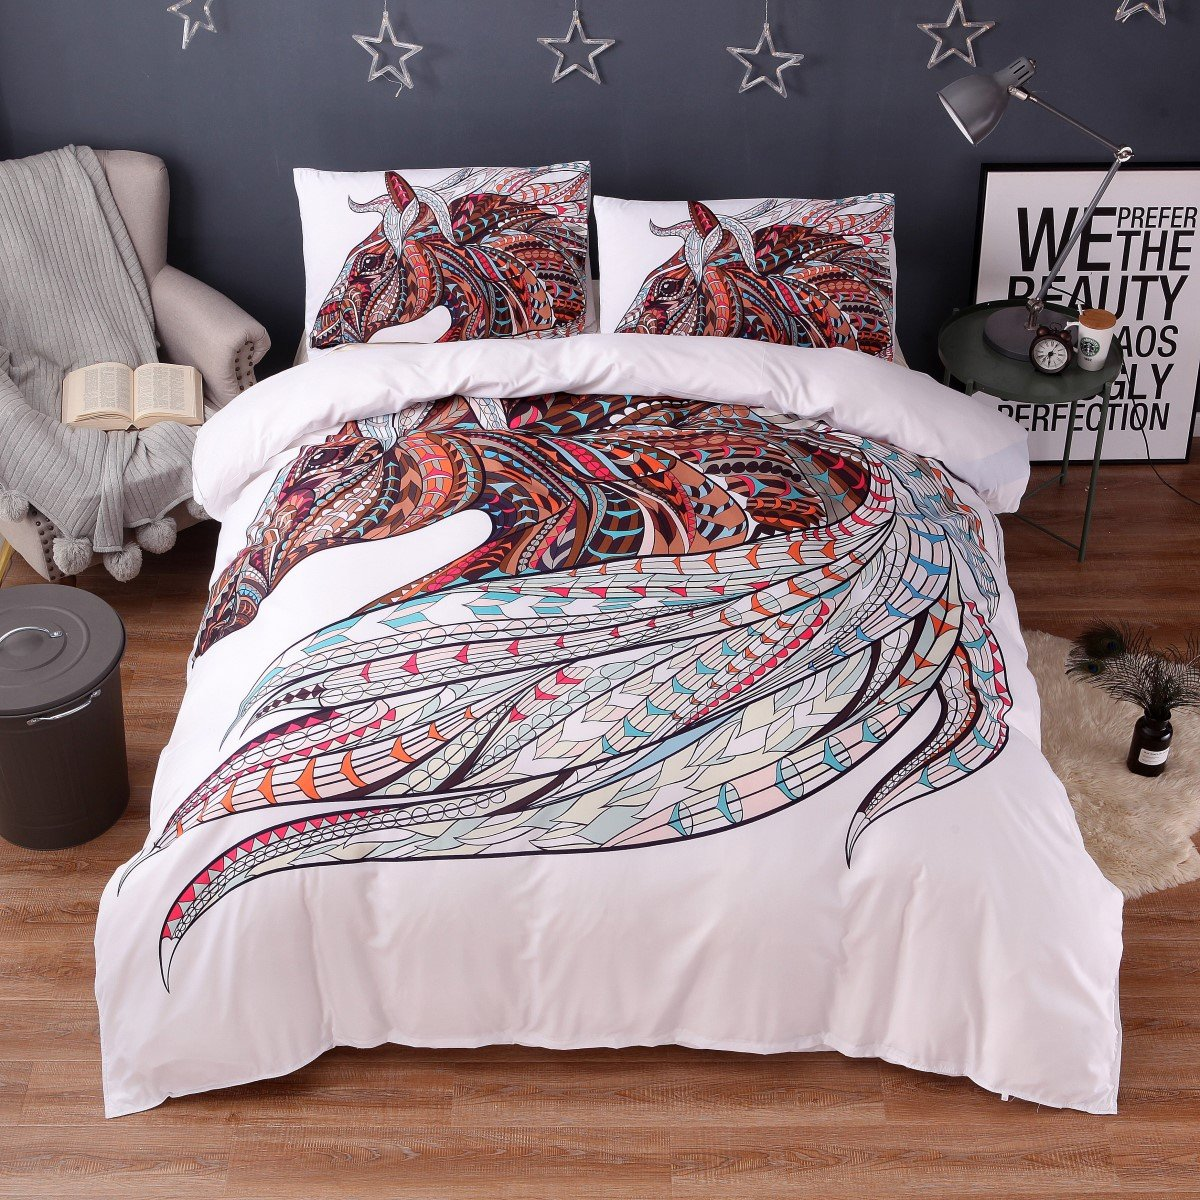 Raytrue-X Fashion 3D Animals Wolves horses Pattern Bedding Sets Digital Printing Duvet Cover Bed Sheet Pillowcases(Size Twin Full Queen King California King)